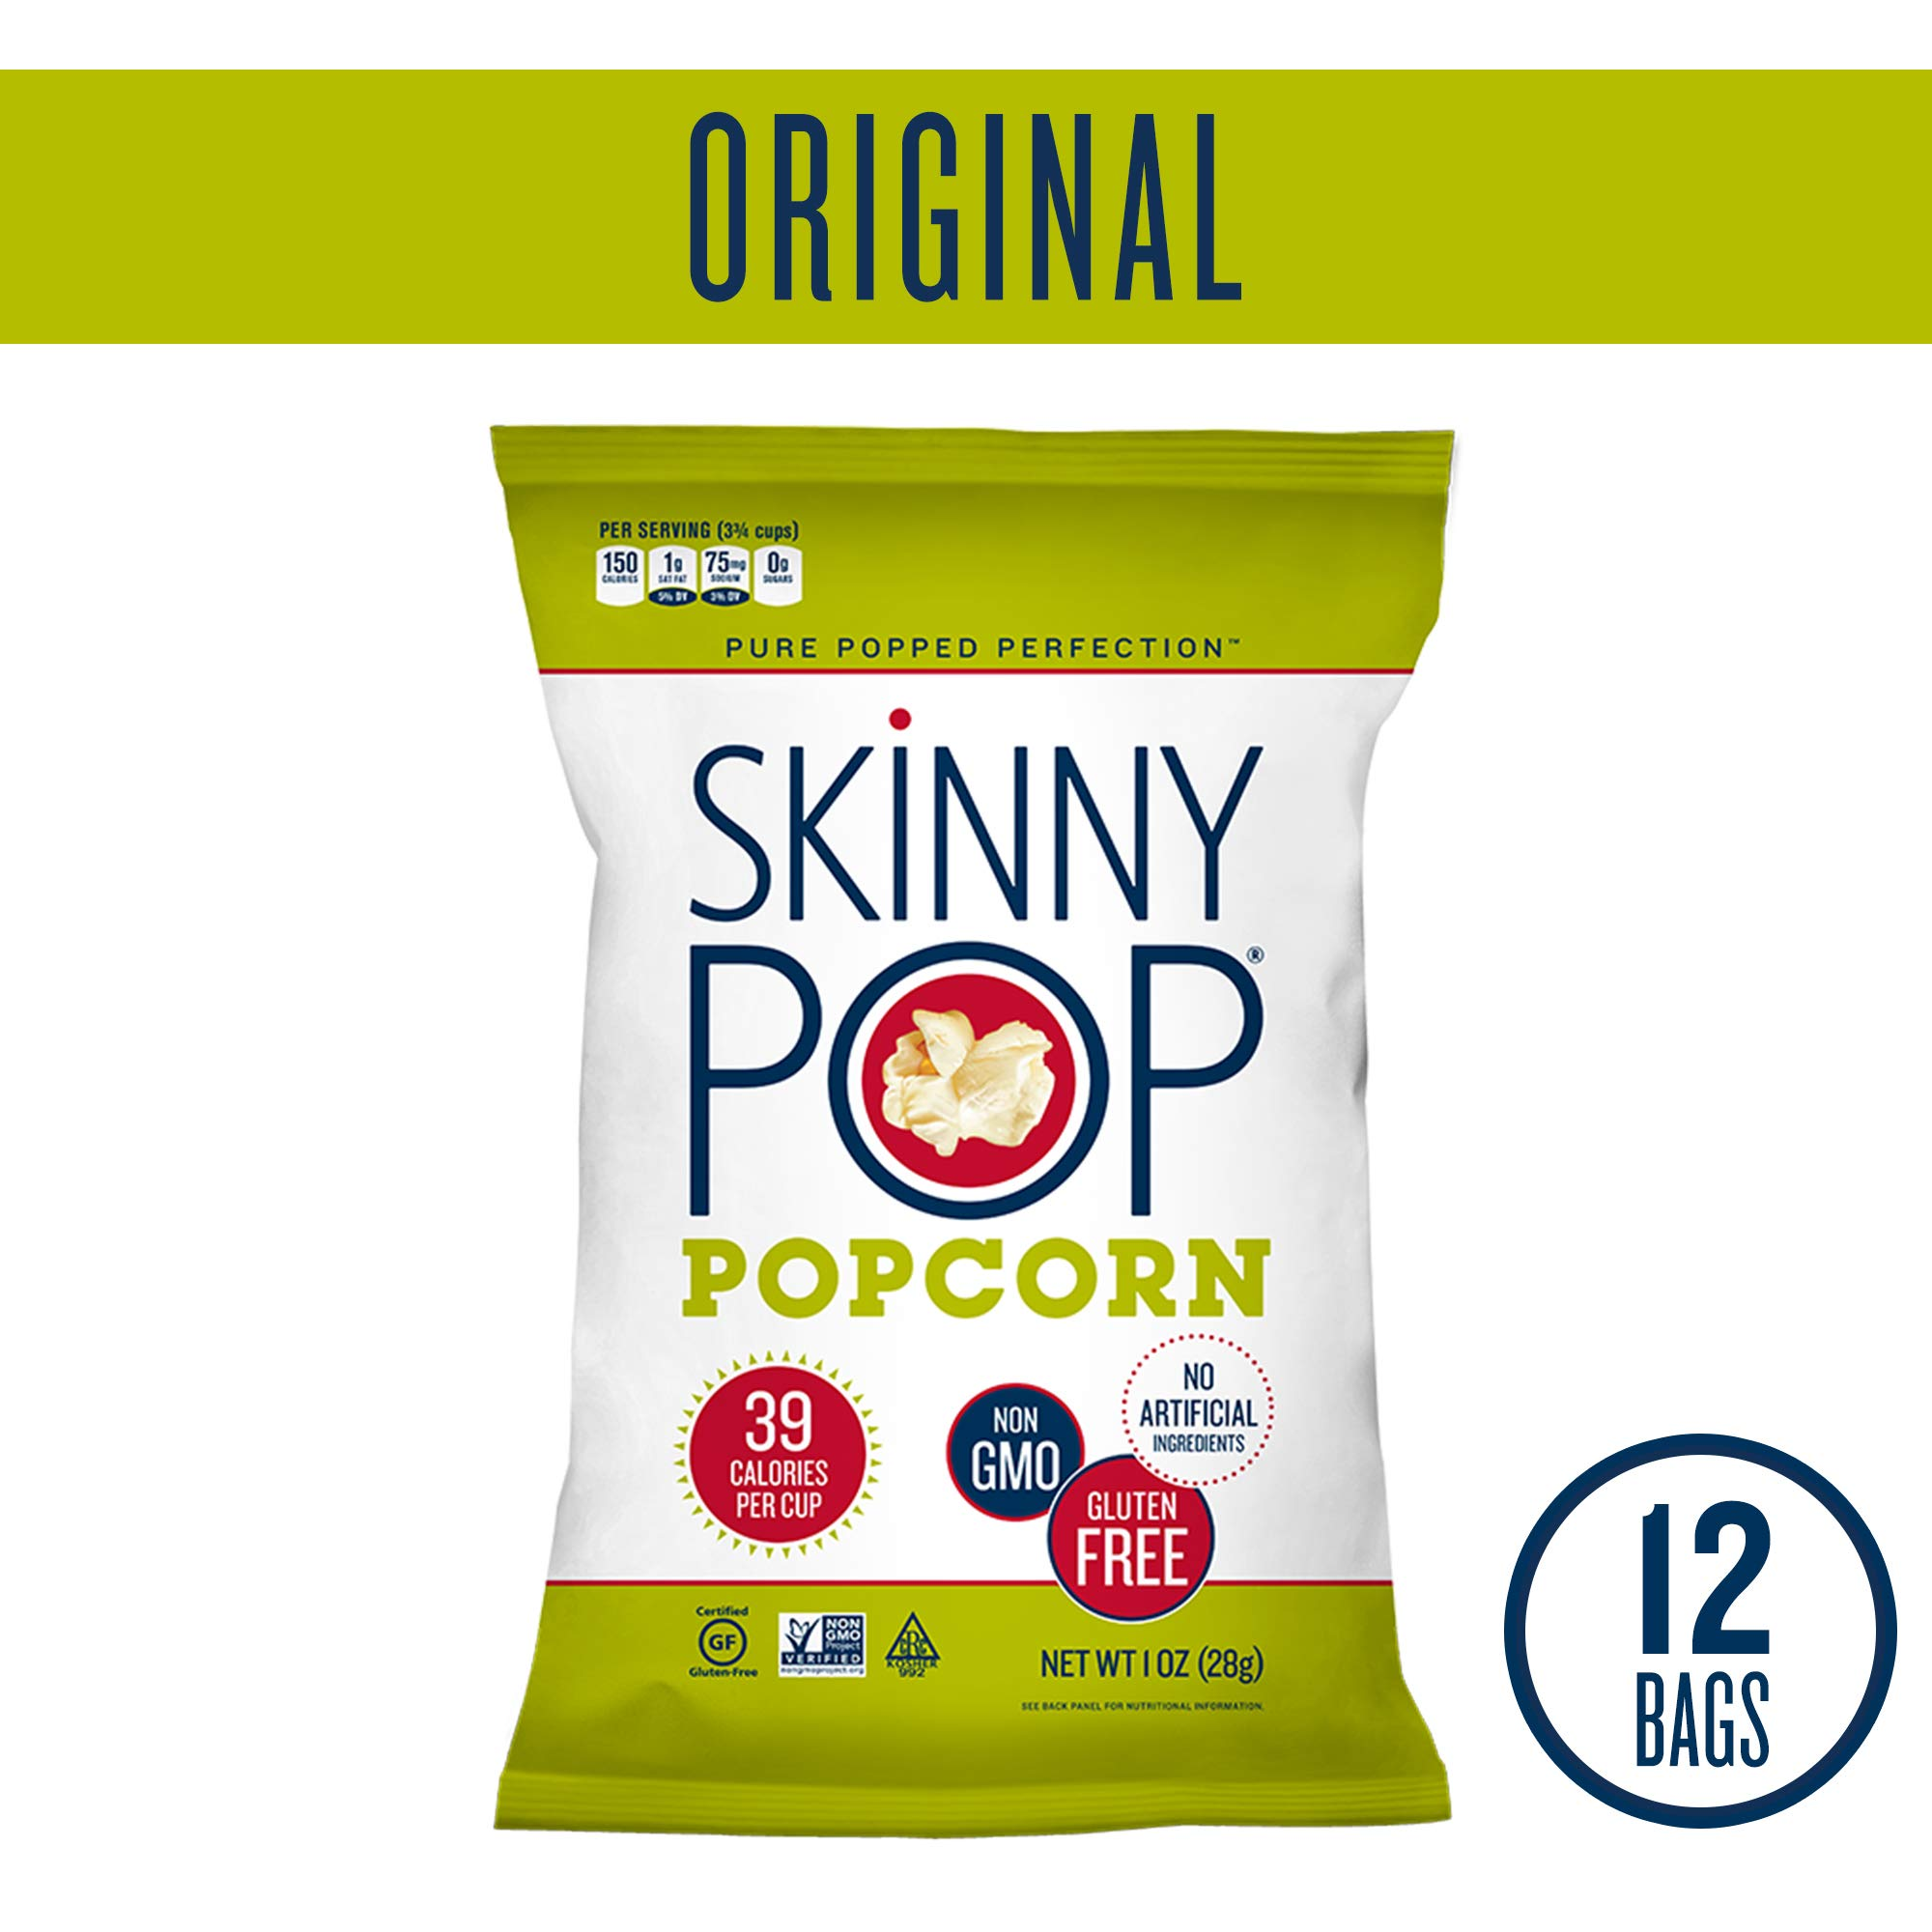 SKINNYPOP Original Popped Popcorn, Individual Bags, Gluten Free Popcorn, Non-GMO, No Artificial Ingredients (Pack of 12) by SkinnyPop